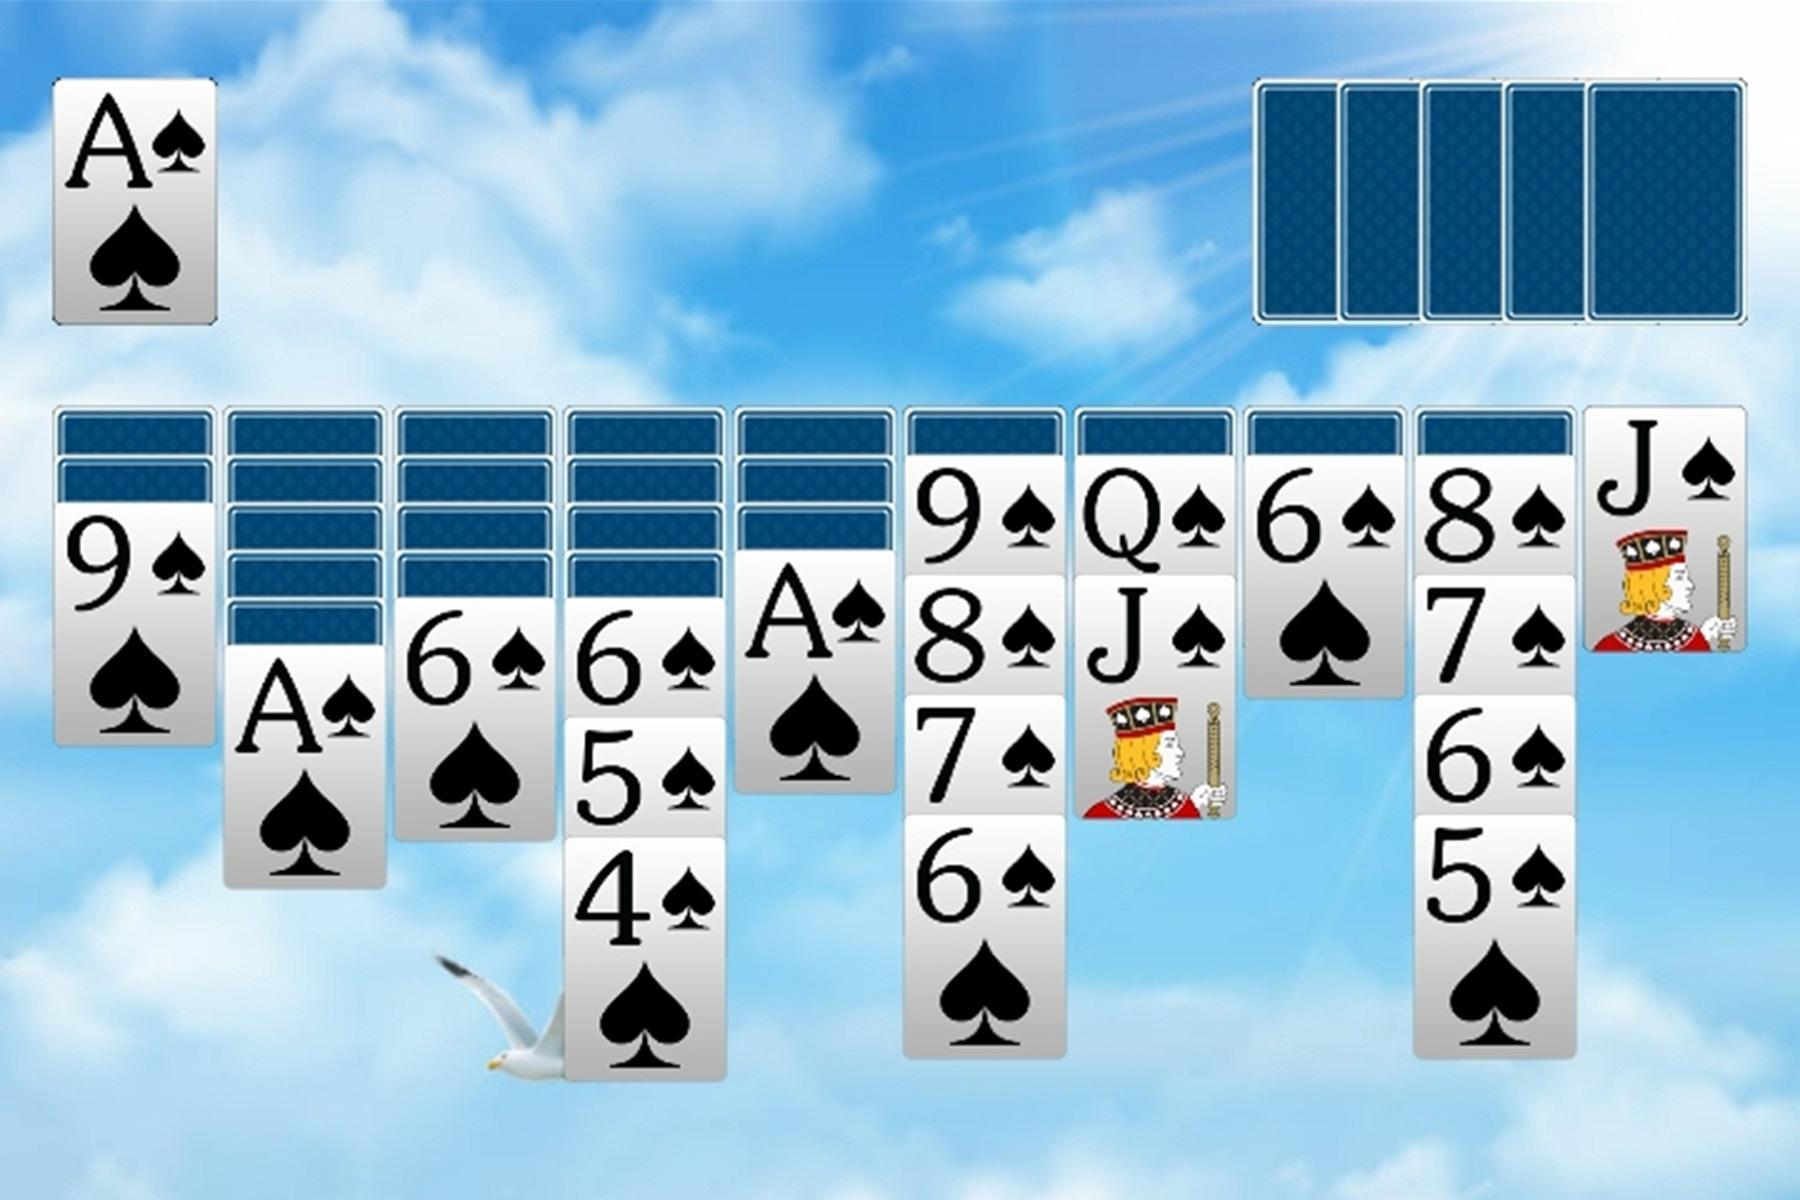 Spider Solitaire 4.4 Screenshot 9